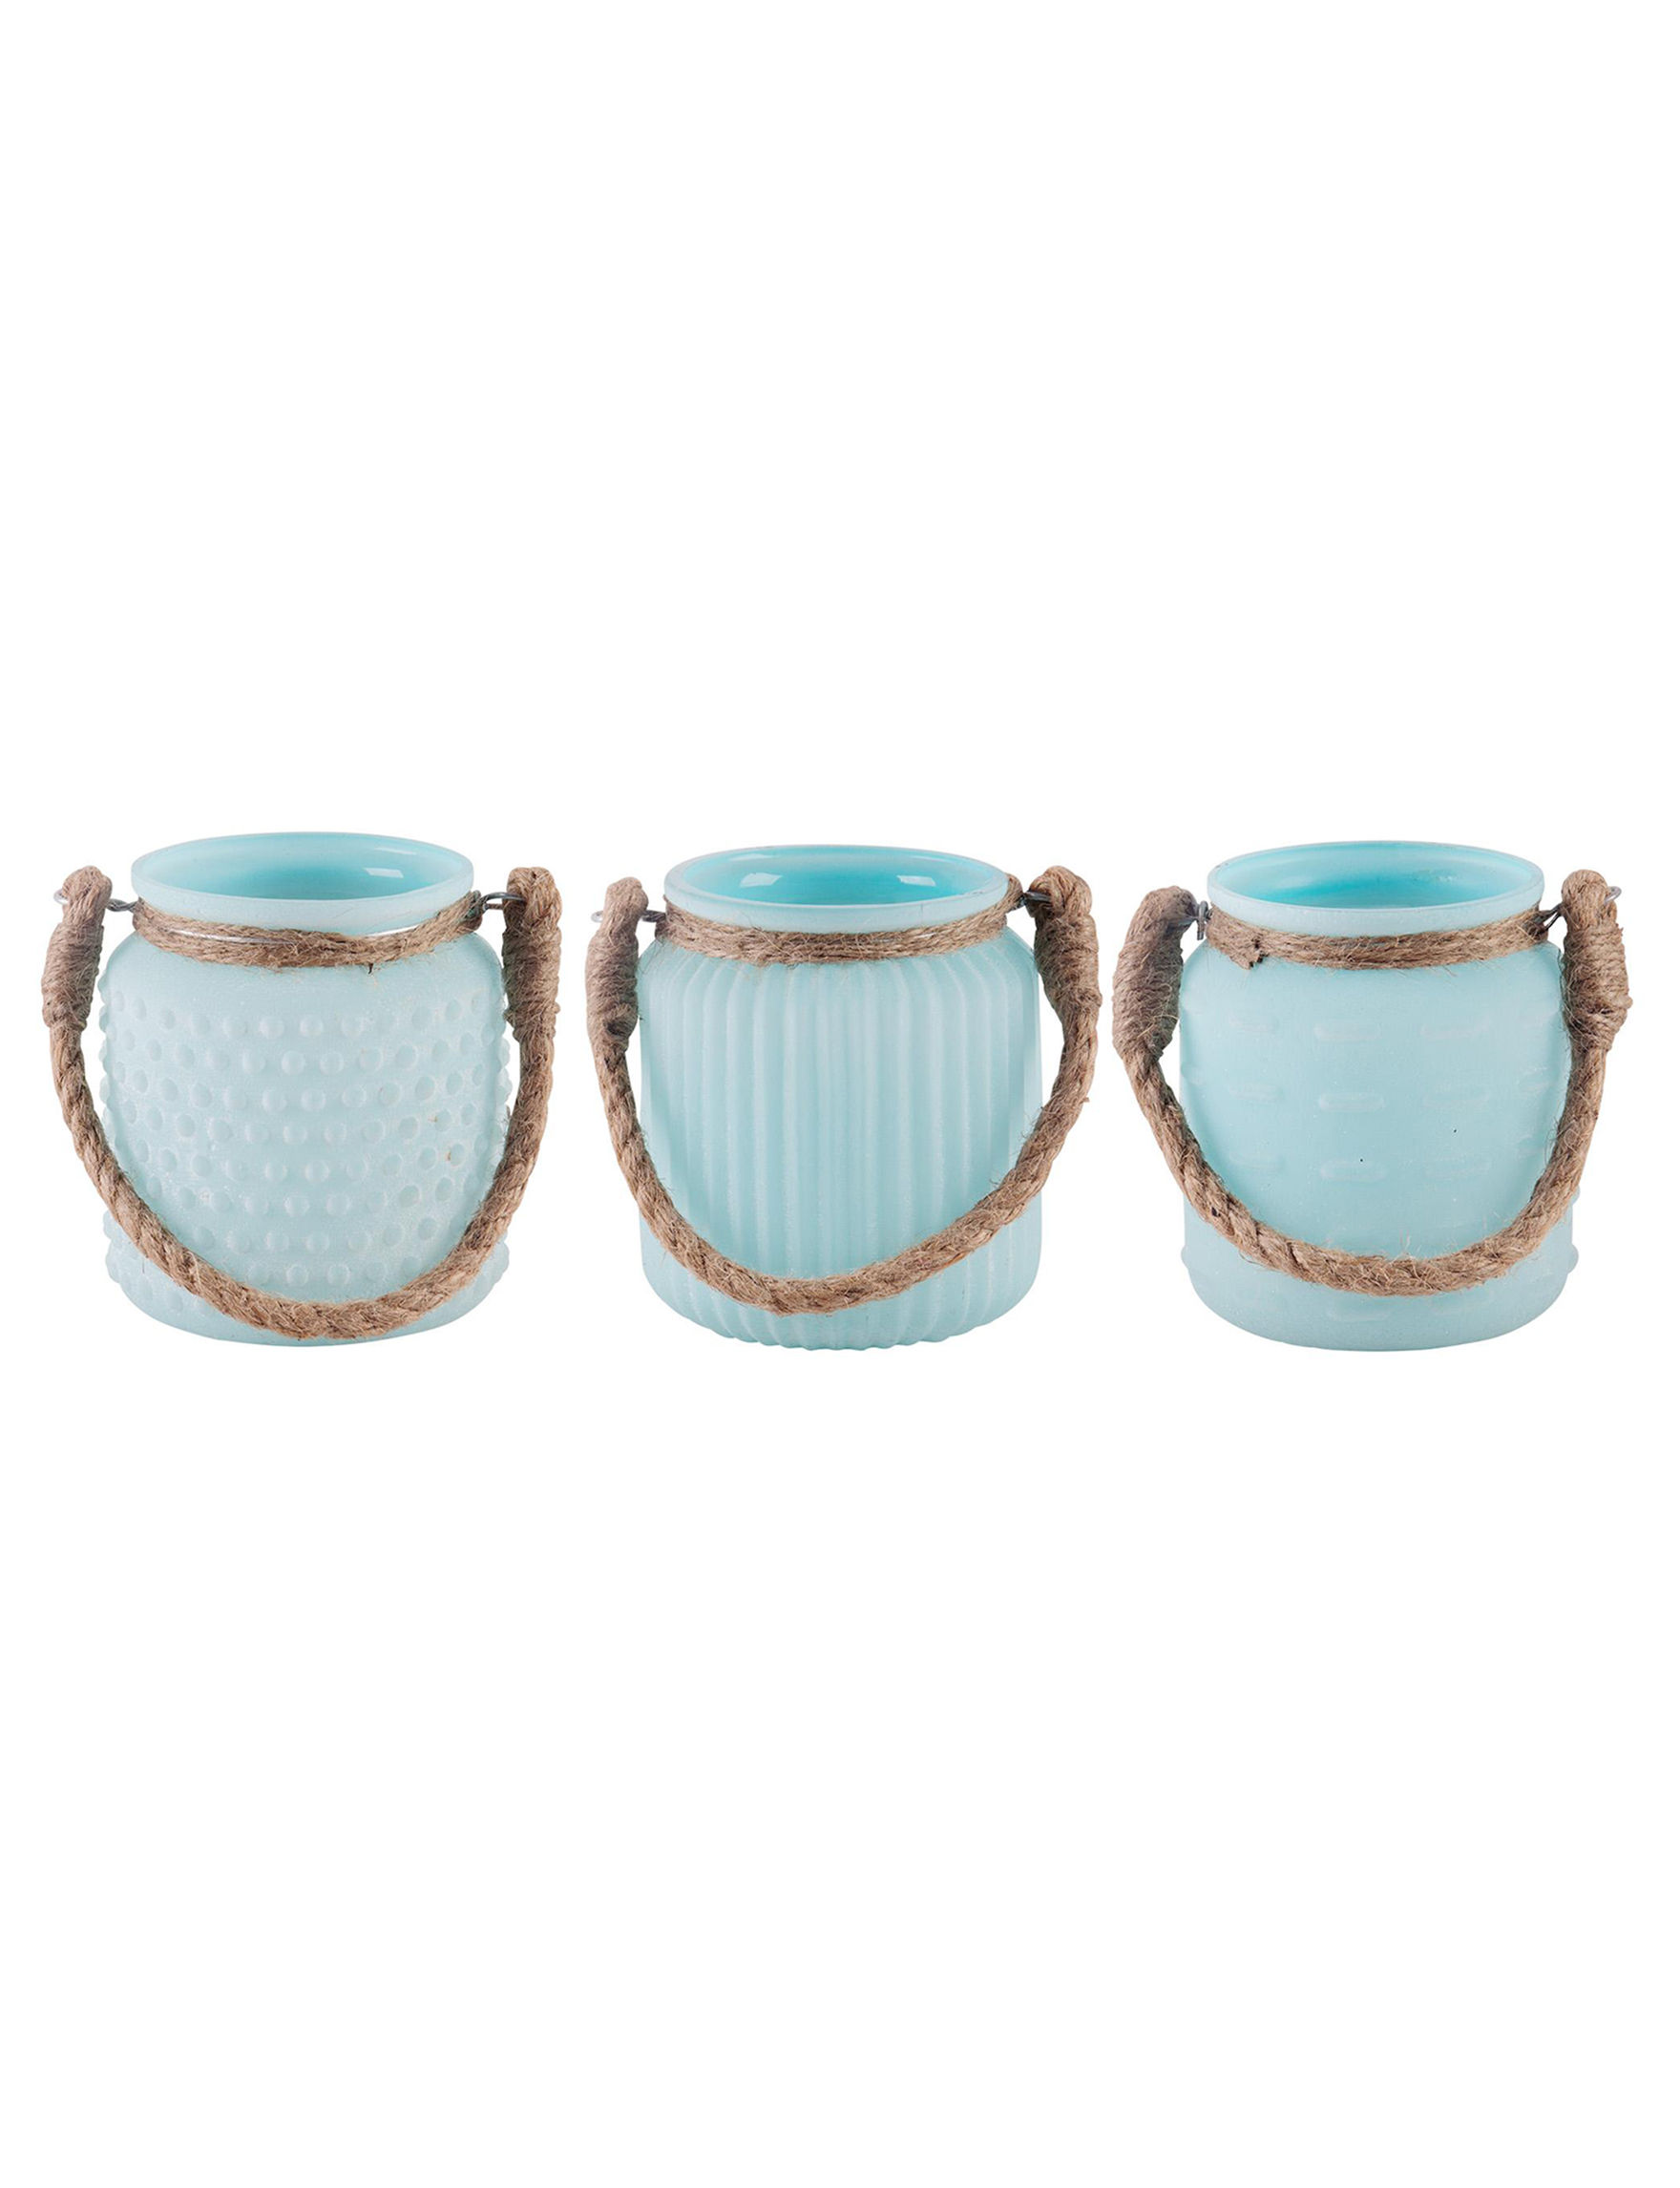 Home Essentials Blue Decorative Objects Candles & Diffusers Lighting & Lamps